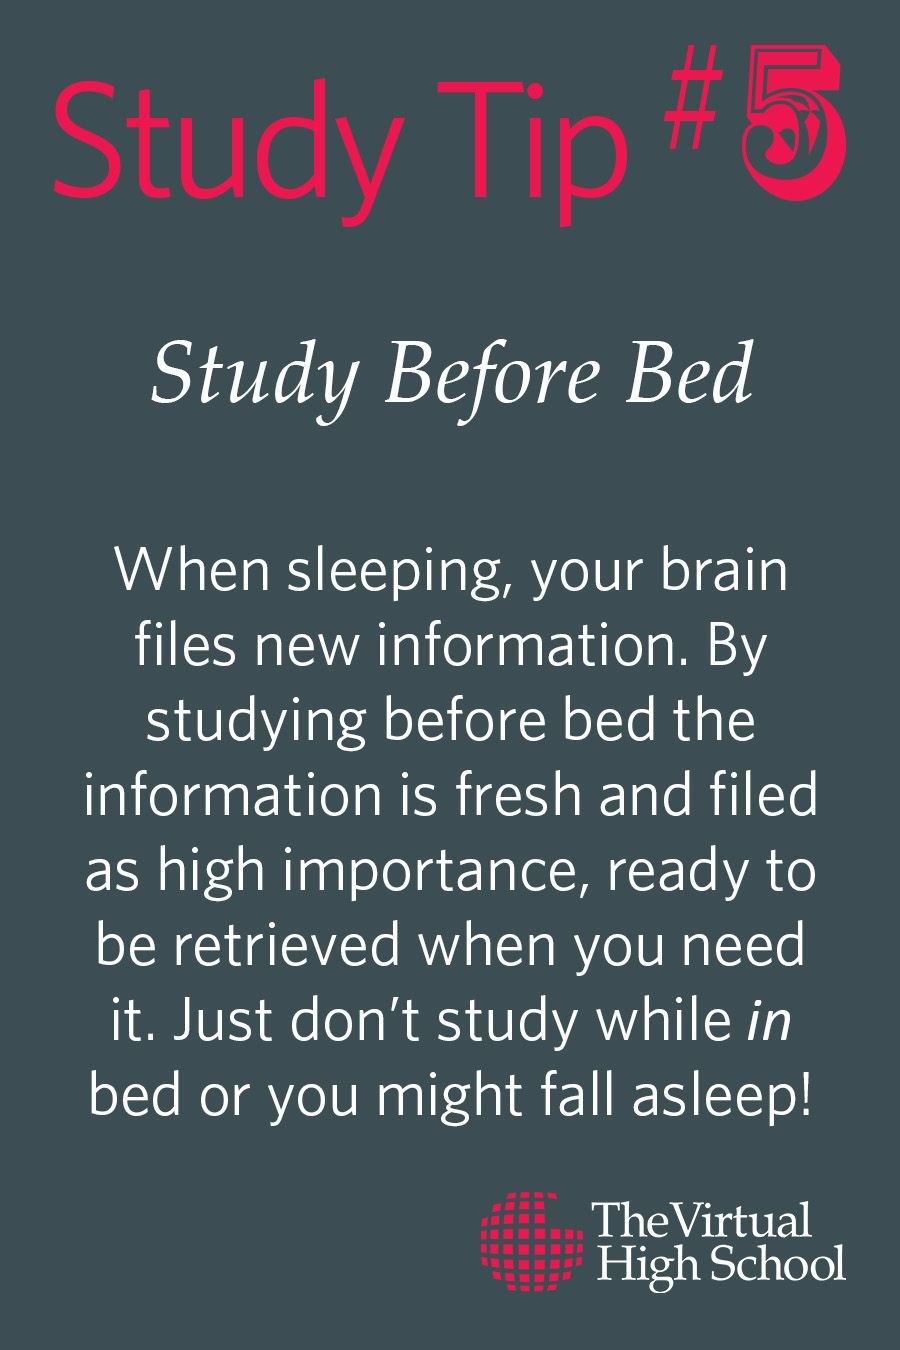 Study Tips to help you better prepare and comprehend